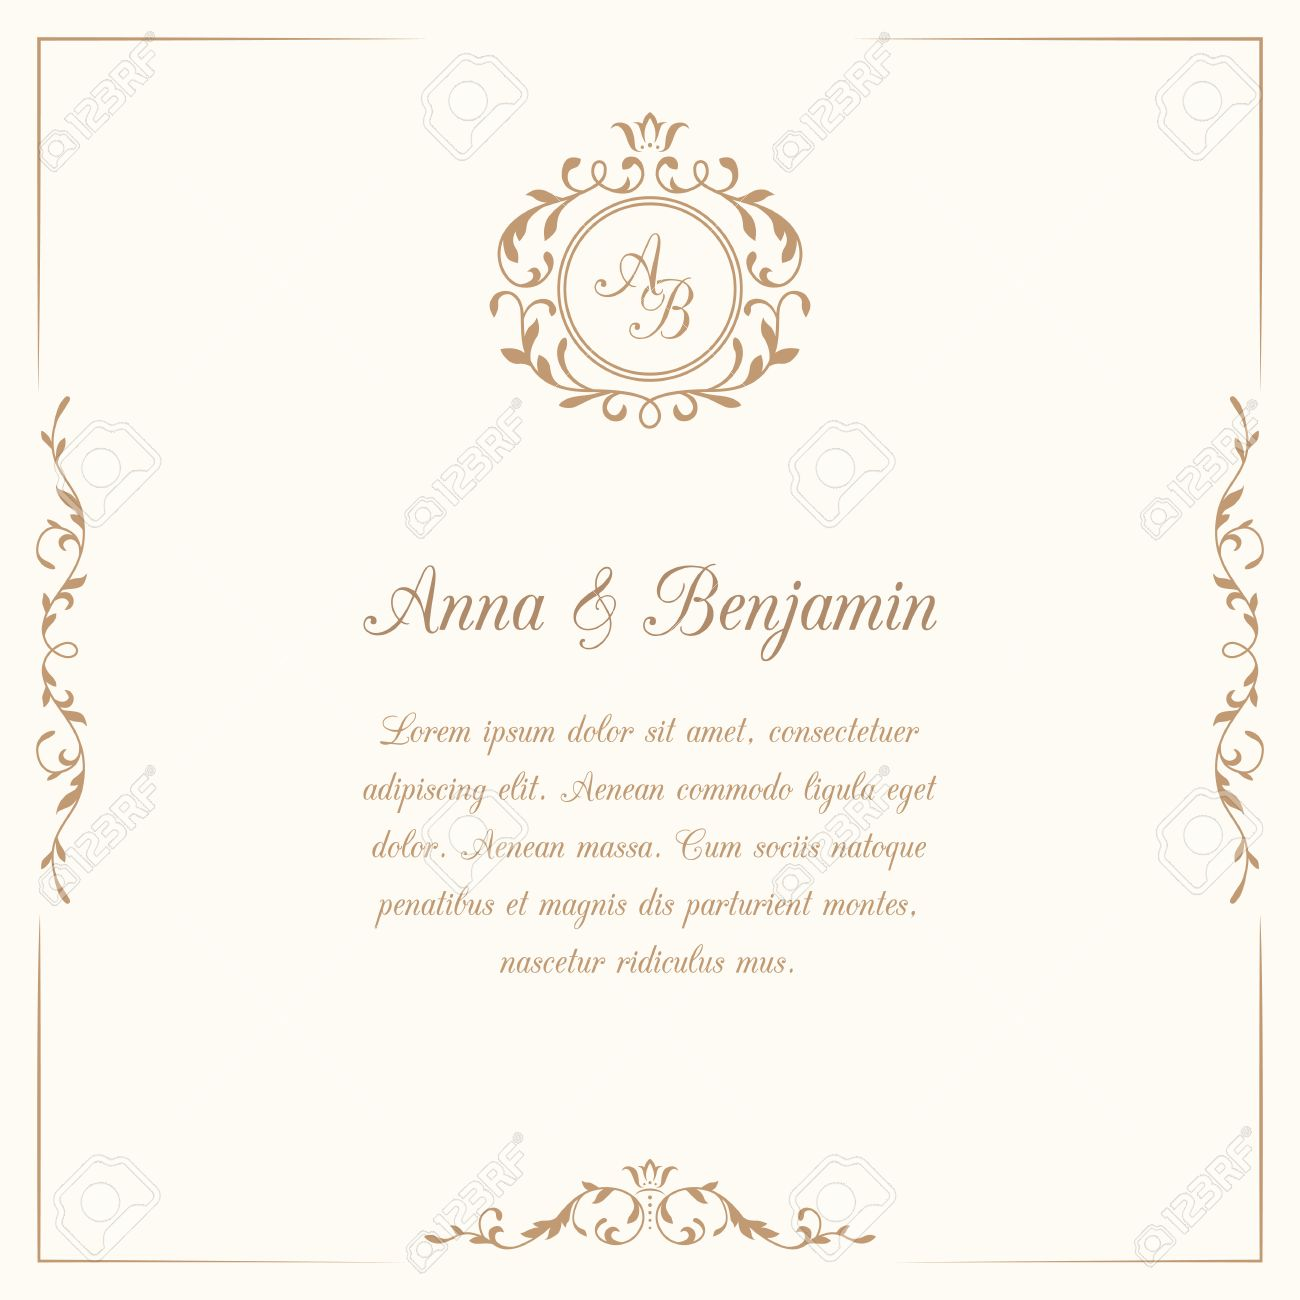 Invitation card with monogram wedding invitation save the date invitation card with monogram wedding invitation save the date vintage invitation template stopboris Image collections